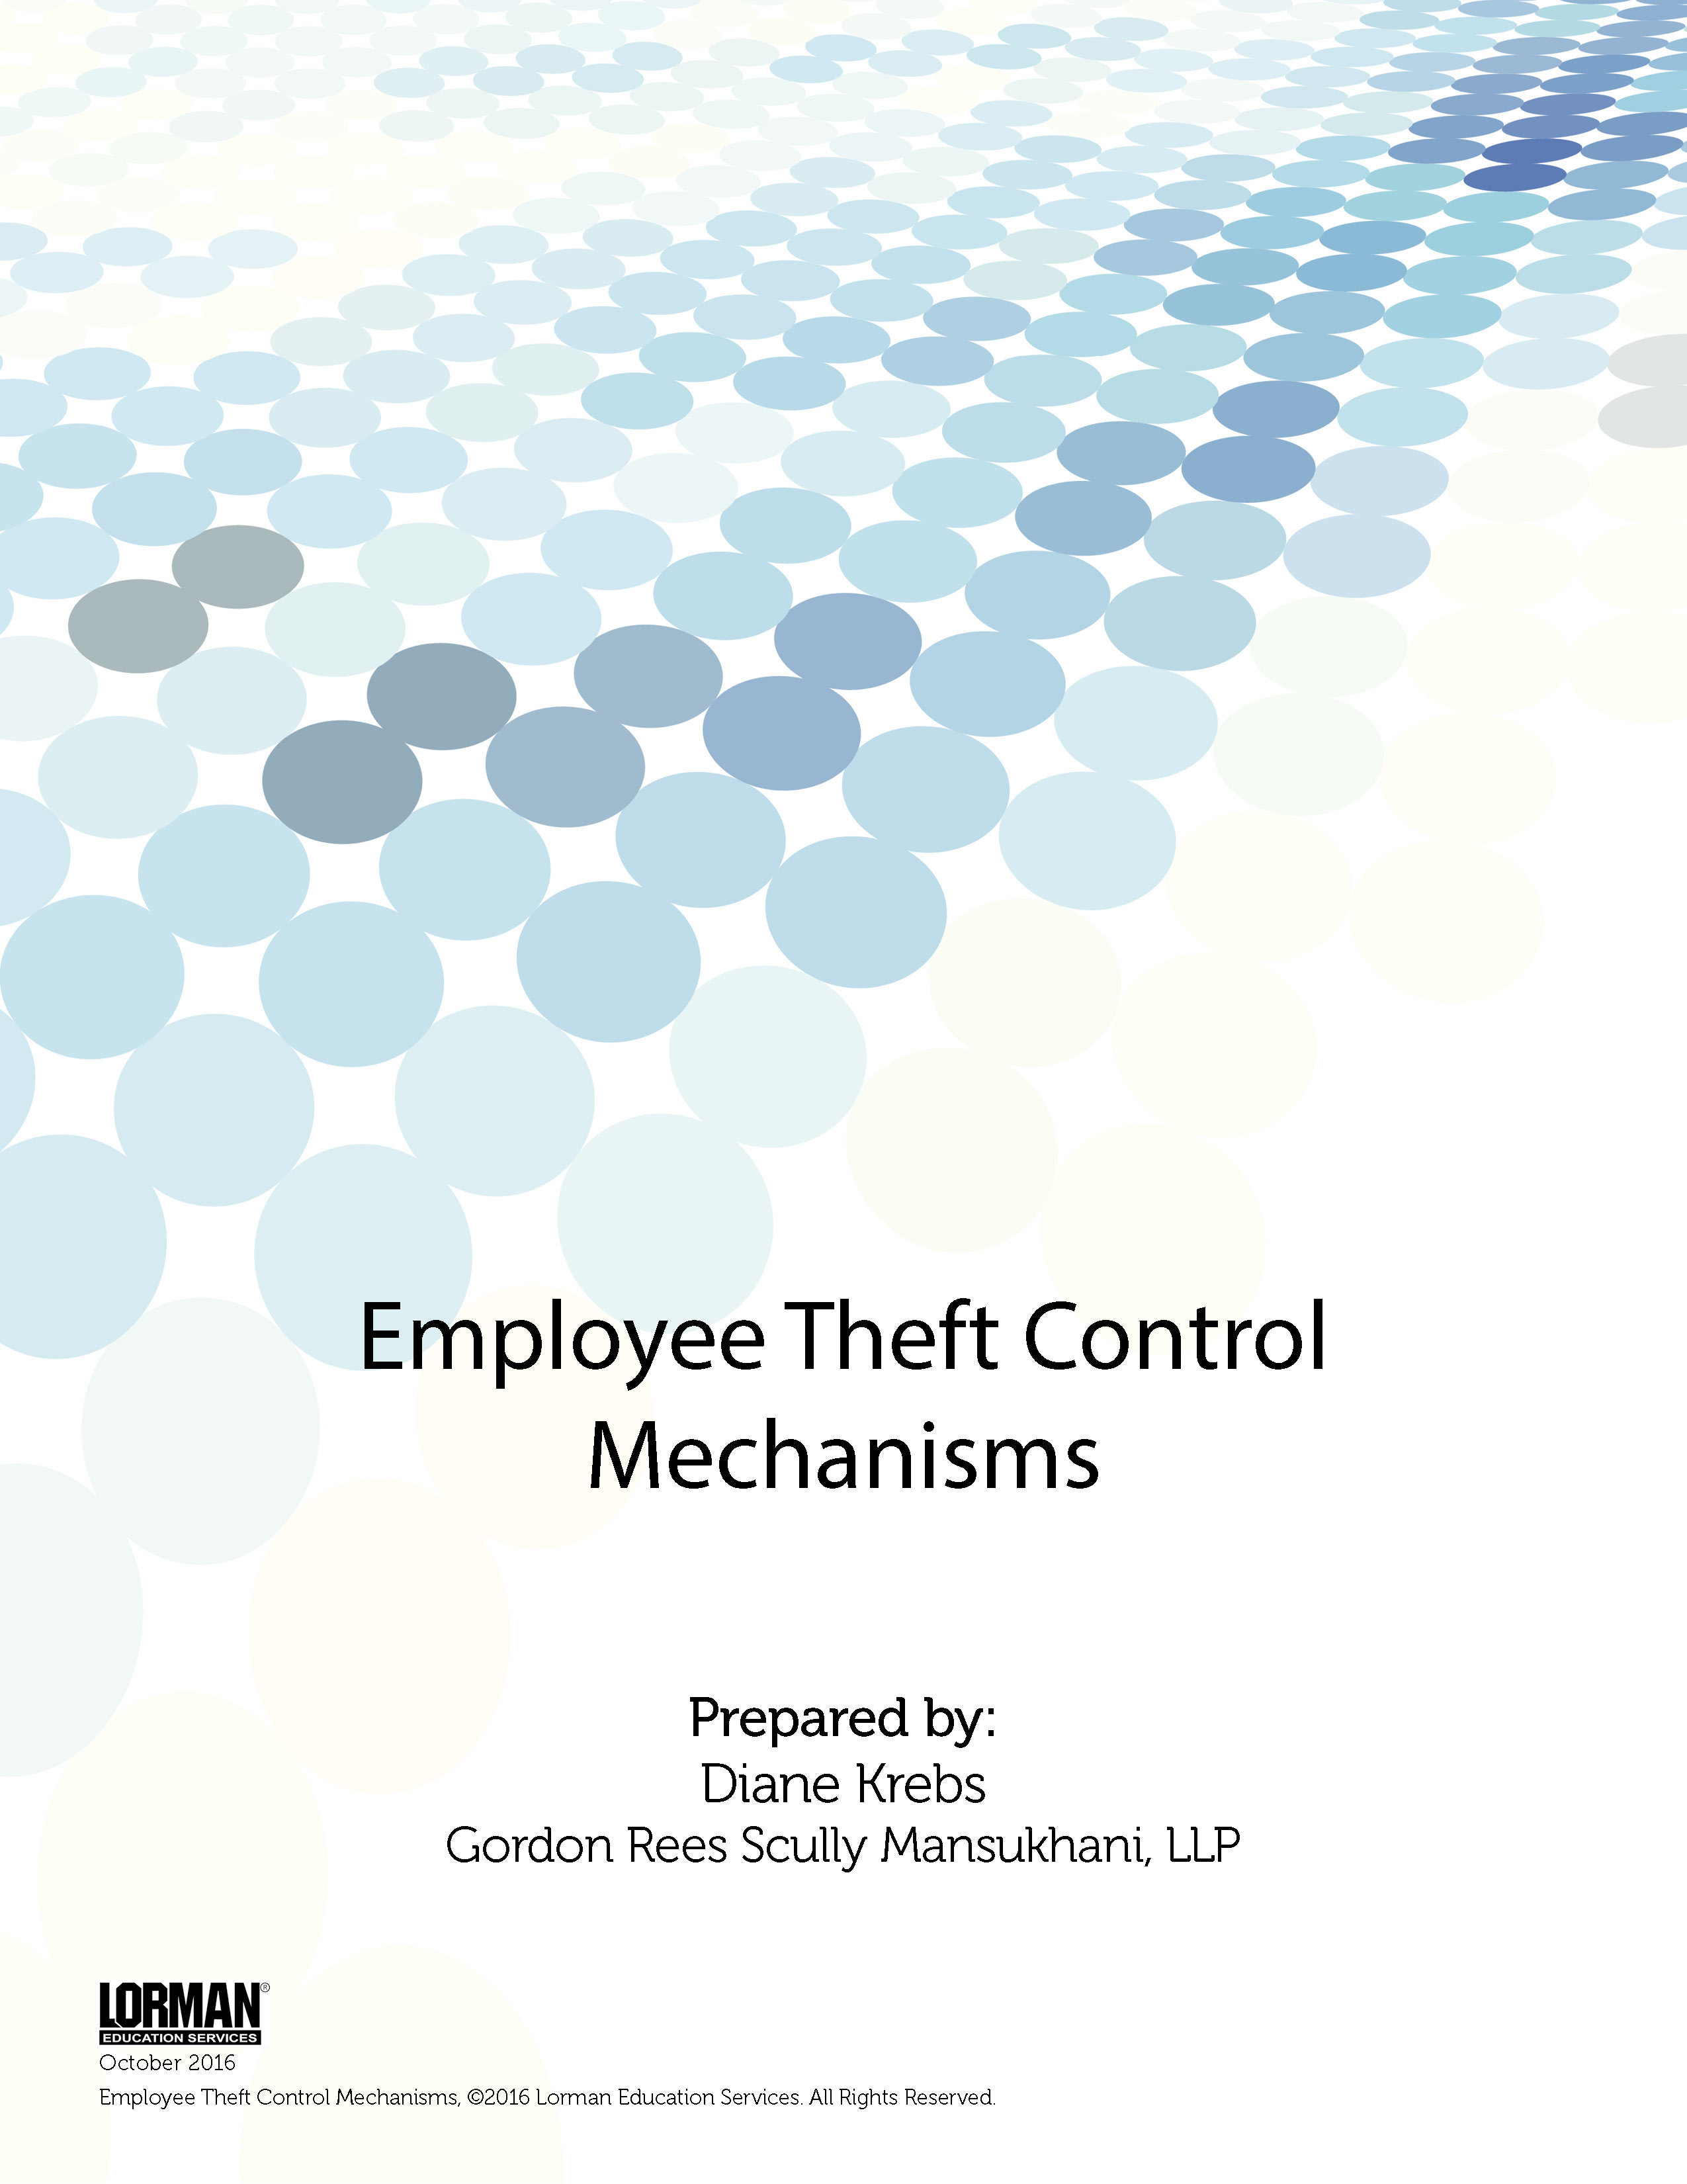 Employee Theft Control Mechanisms